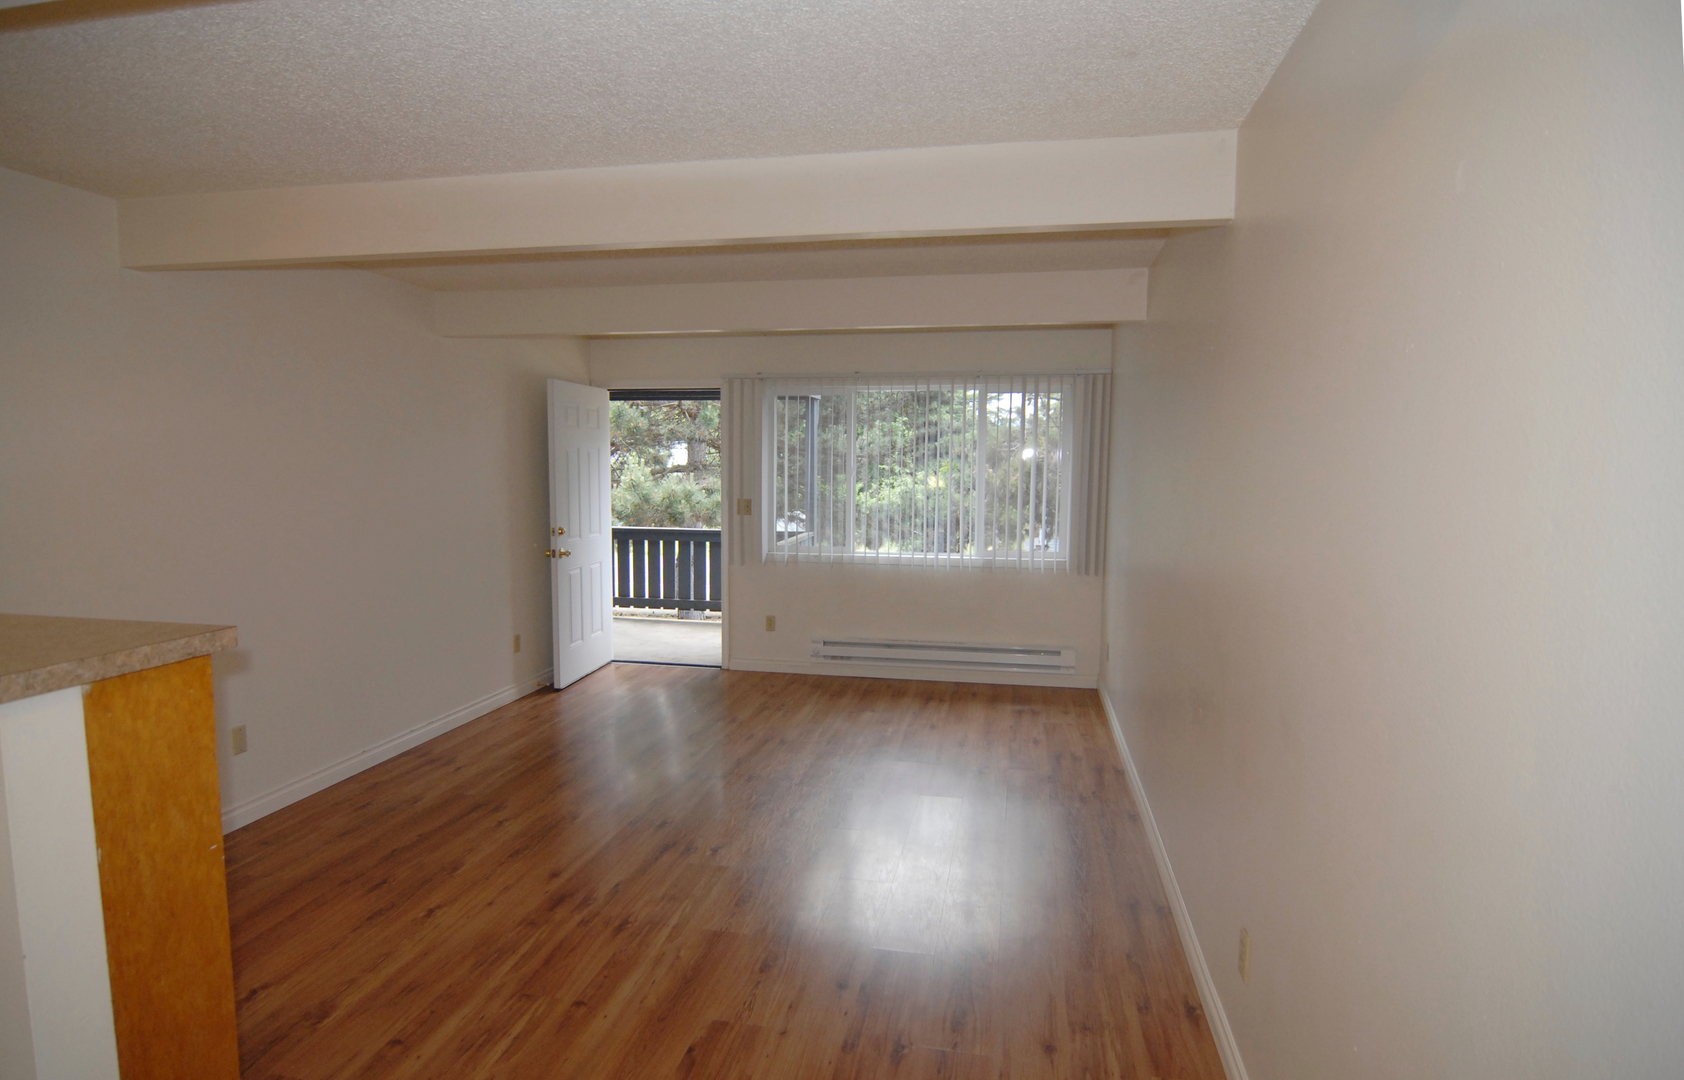 Apartment for Rent in Corvallis